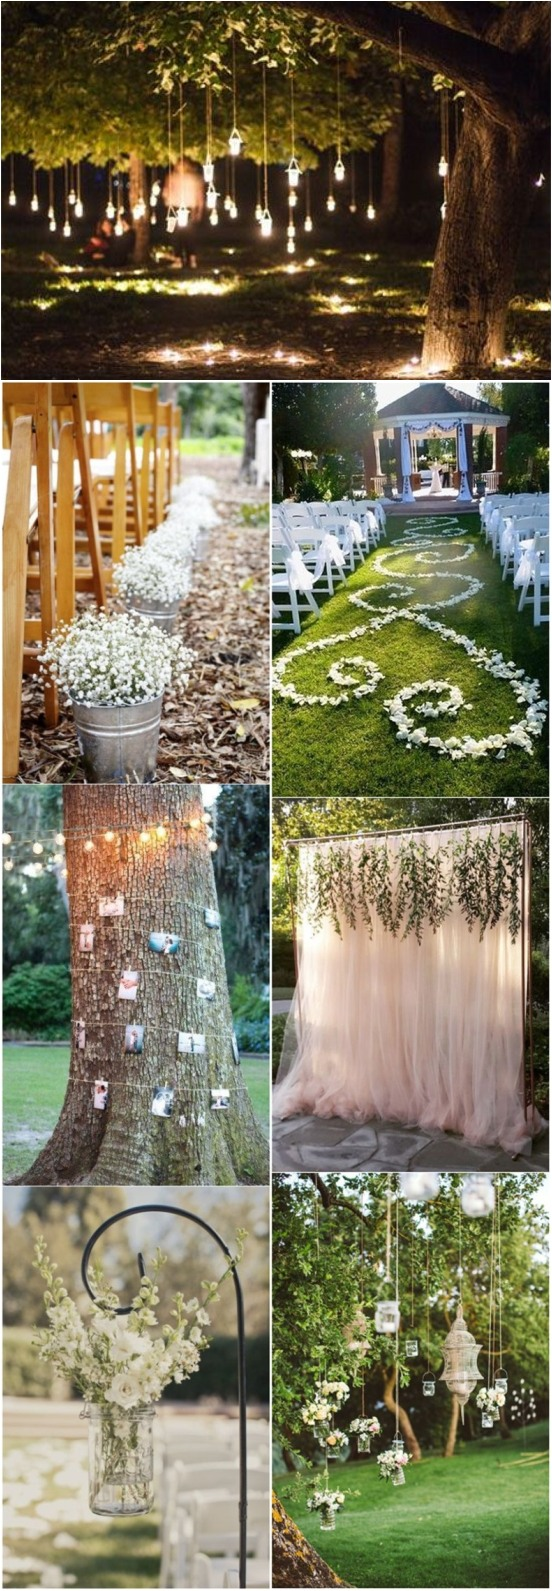 Genius outdoor wedding ideas